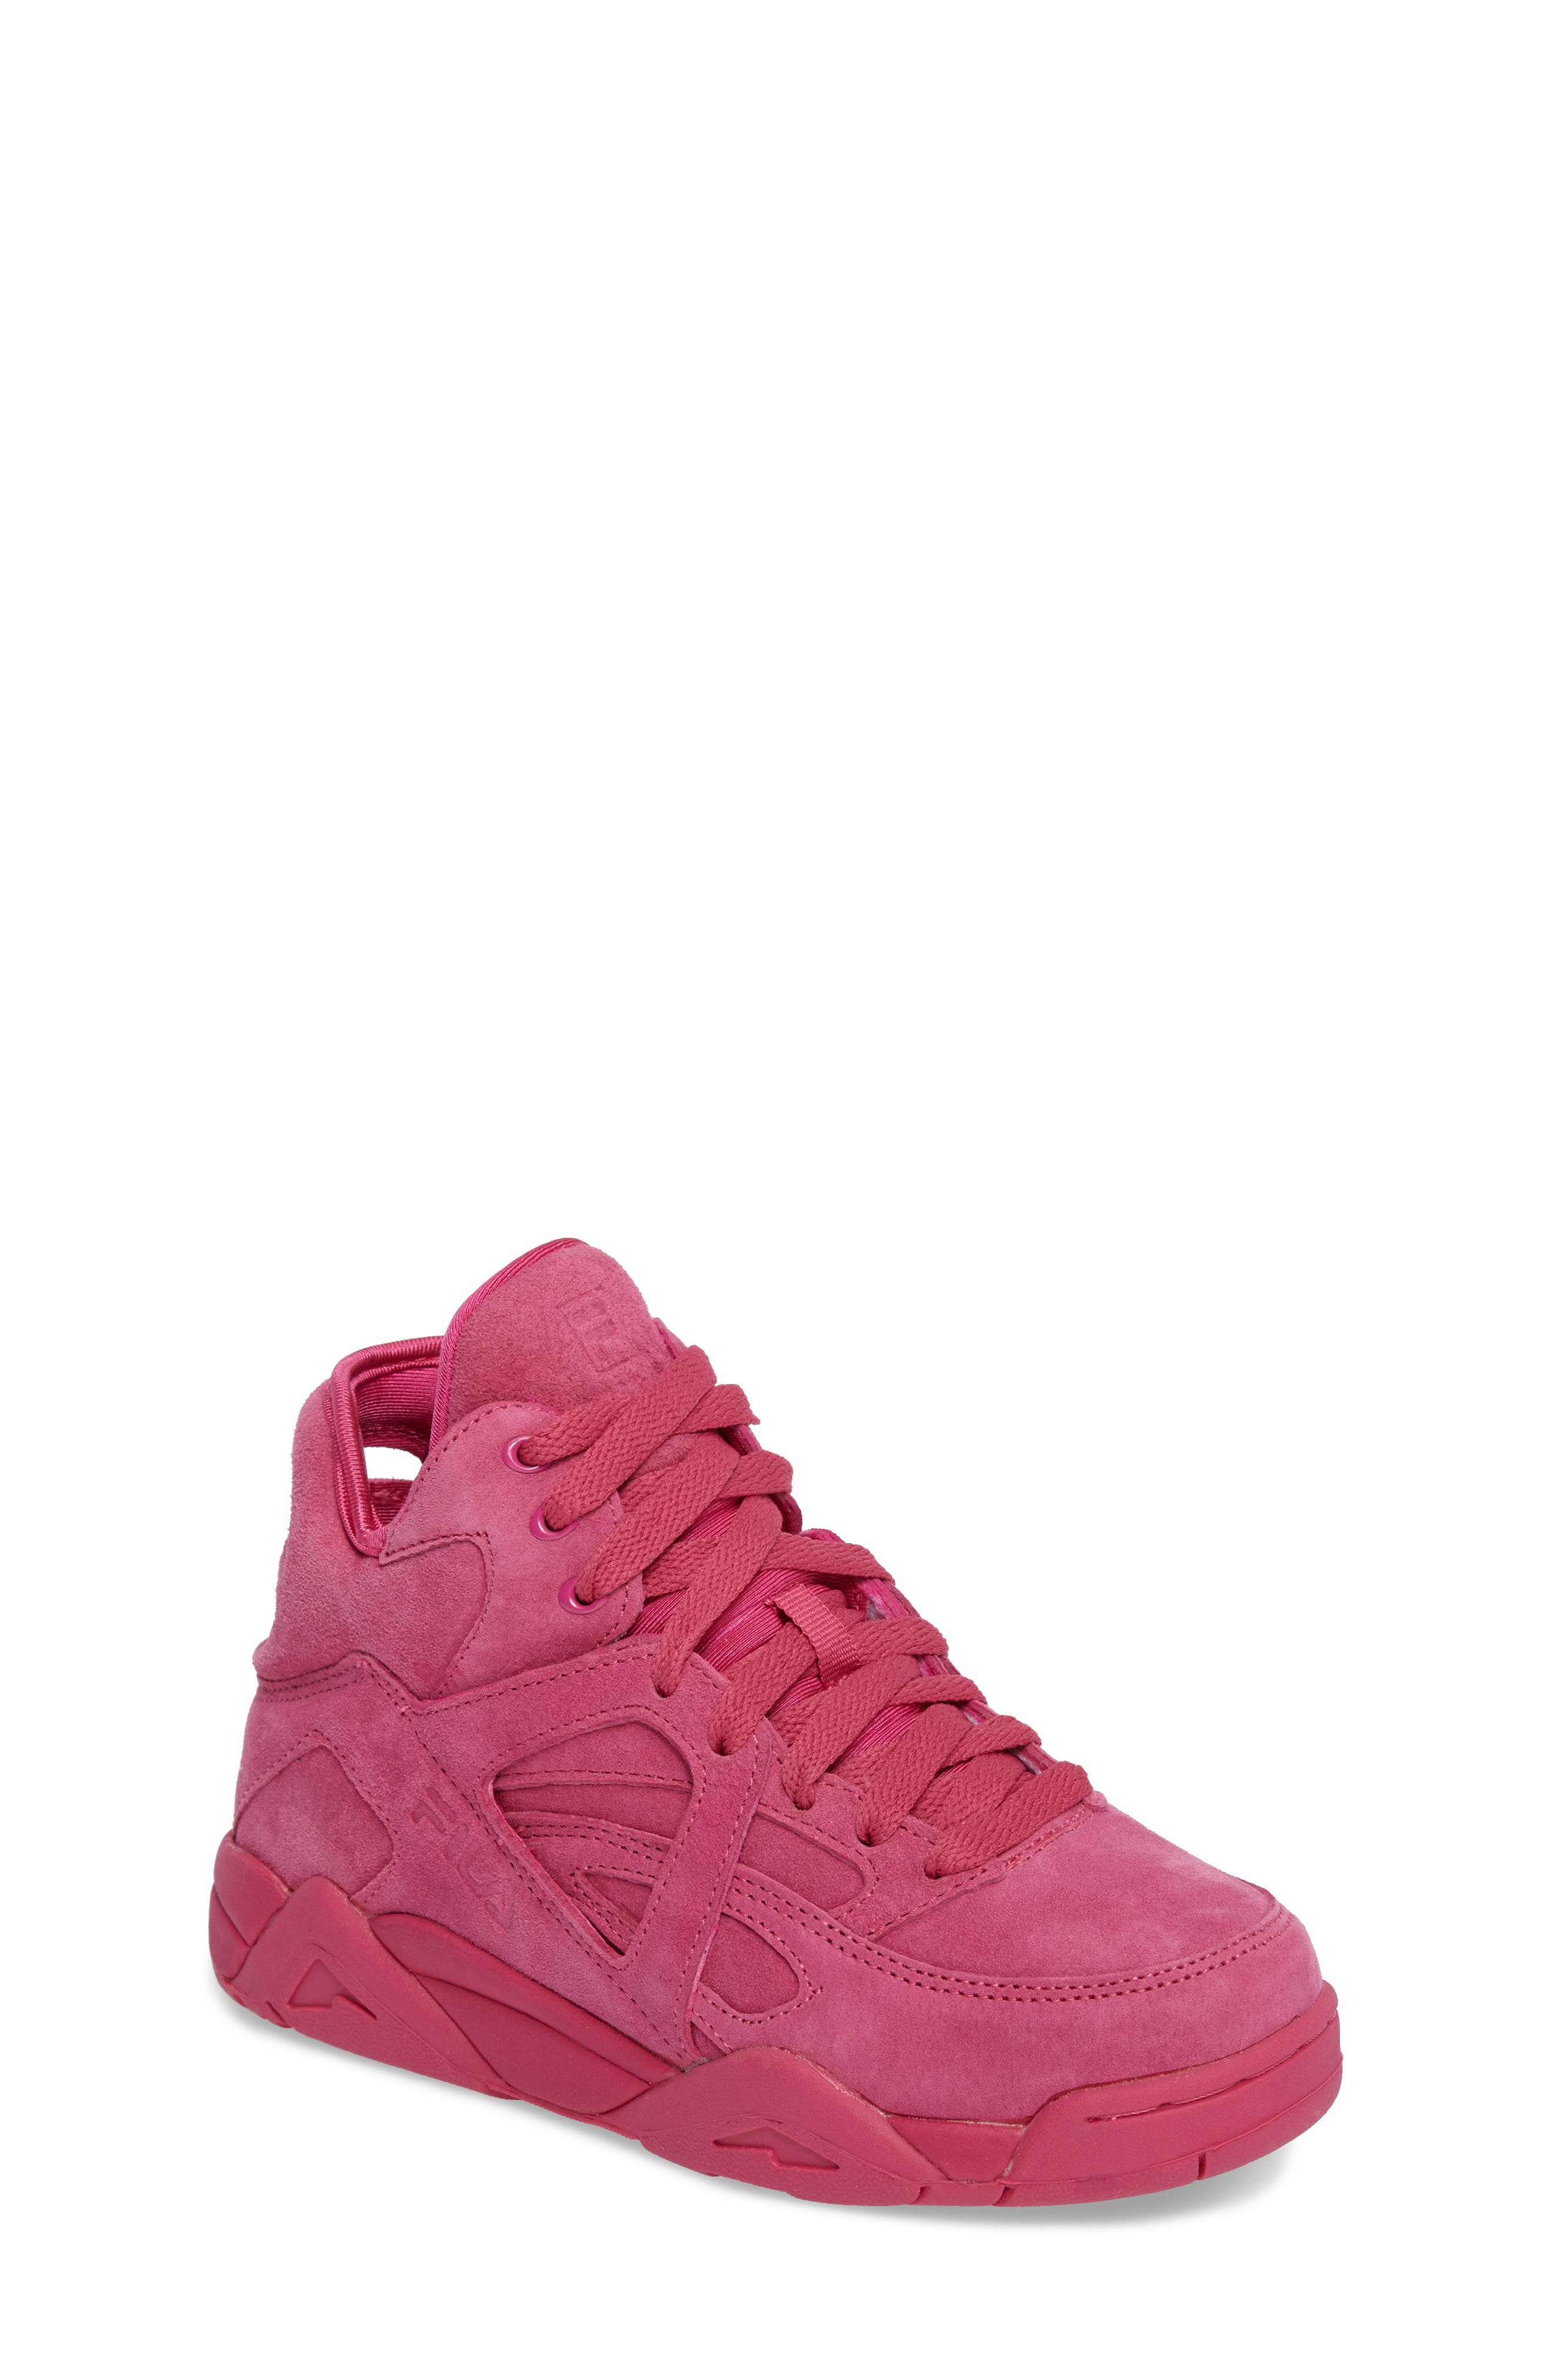 The Cage High Top Sneaker,                         Main,                         color, 650